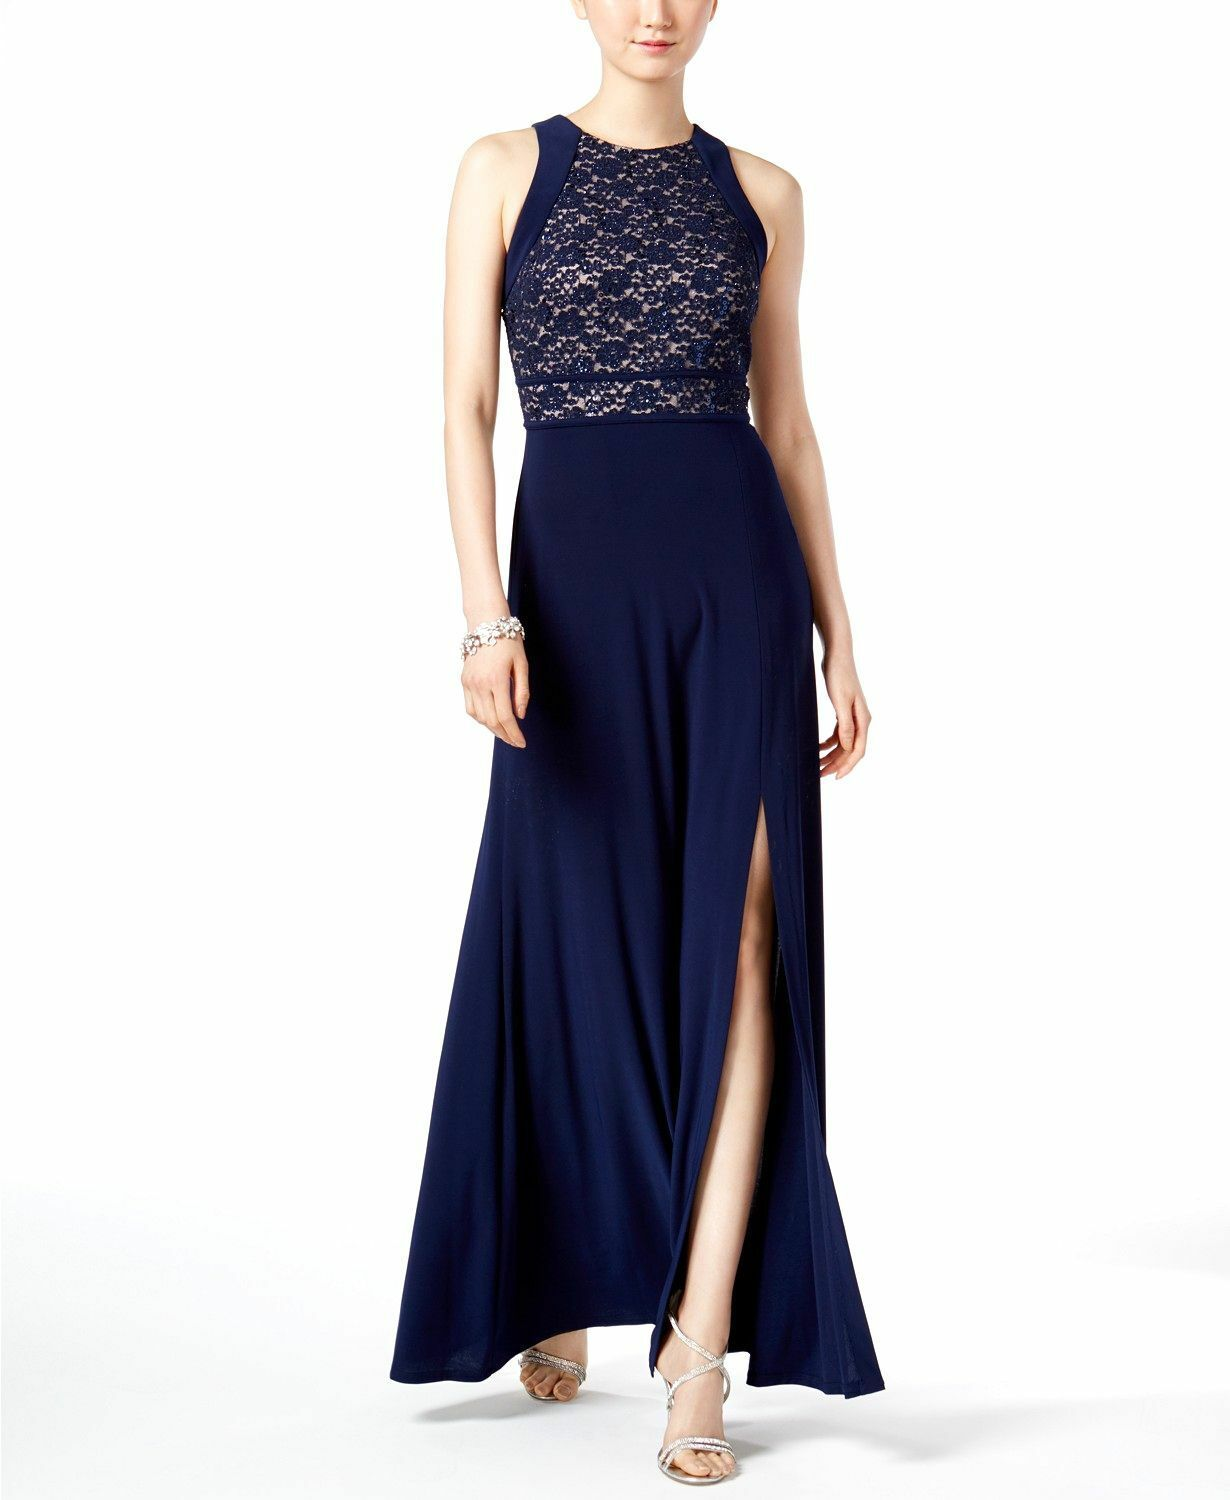 299 NIGHTWAY WOMEN'S blueE GLITTER SEQUINED LACE GOWN PETITE SLIT DRESS SIZE 10P